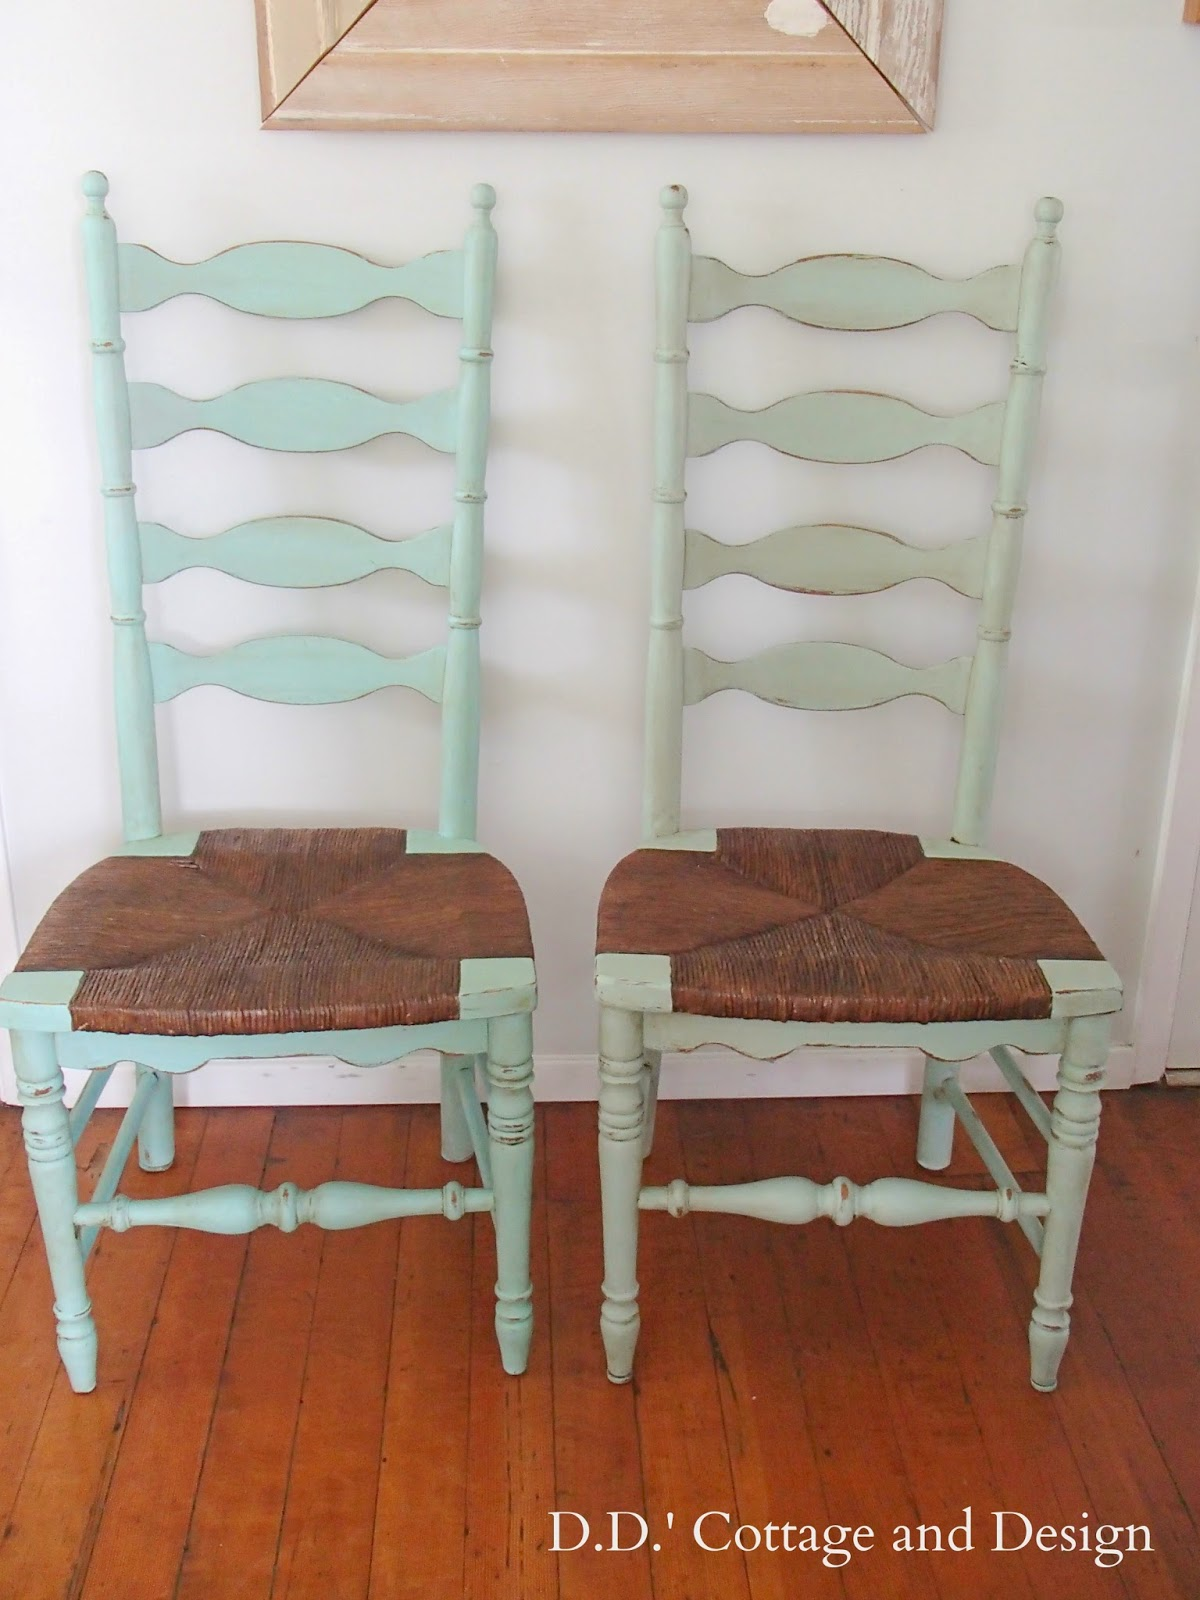 4 Ladder Back Chairs With Rush Seats